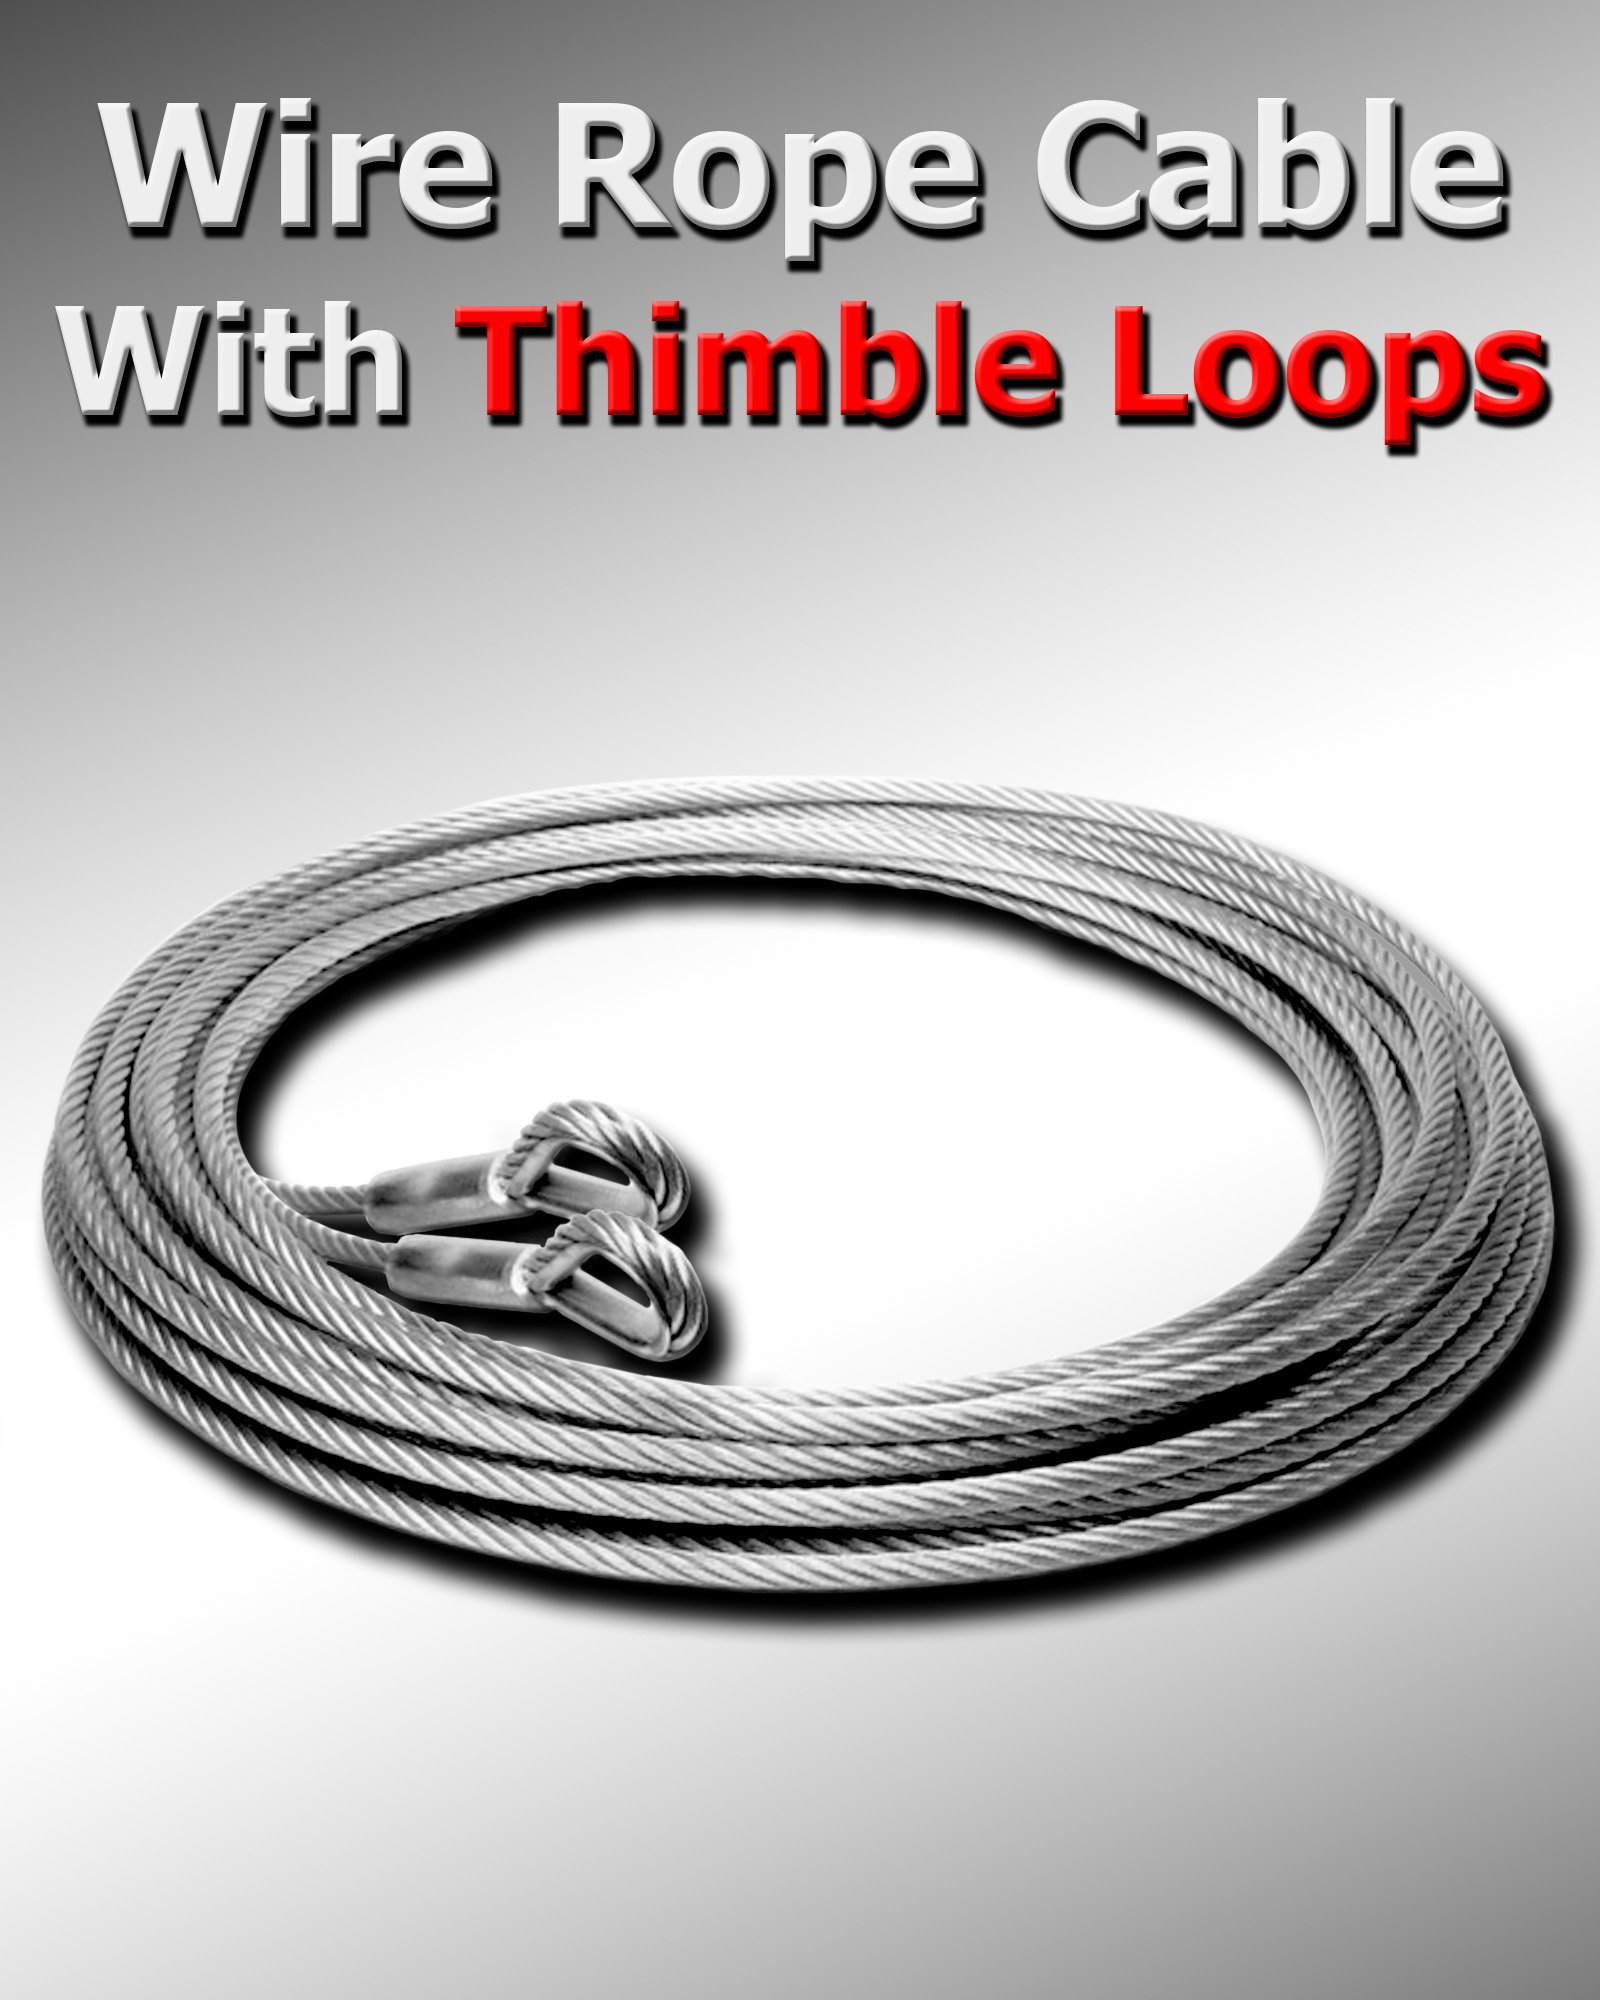 100 ft 5/16'' Galvanized Wire Rope Cable with Thimble Loops On Both Ends Choose Size/Quantity in Listing Super-Deals-Shop